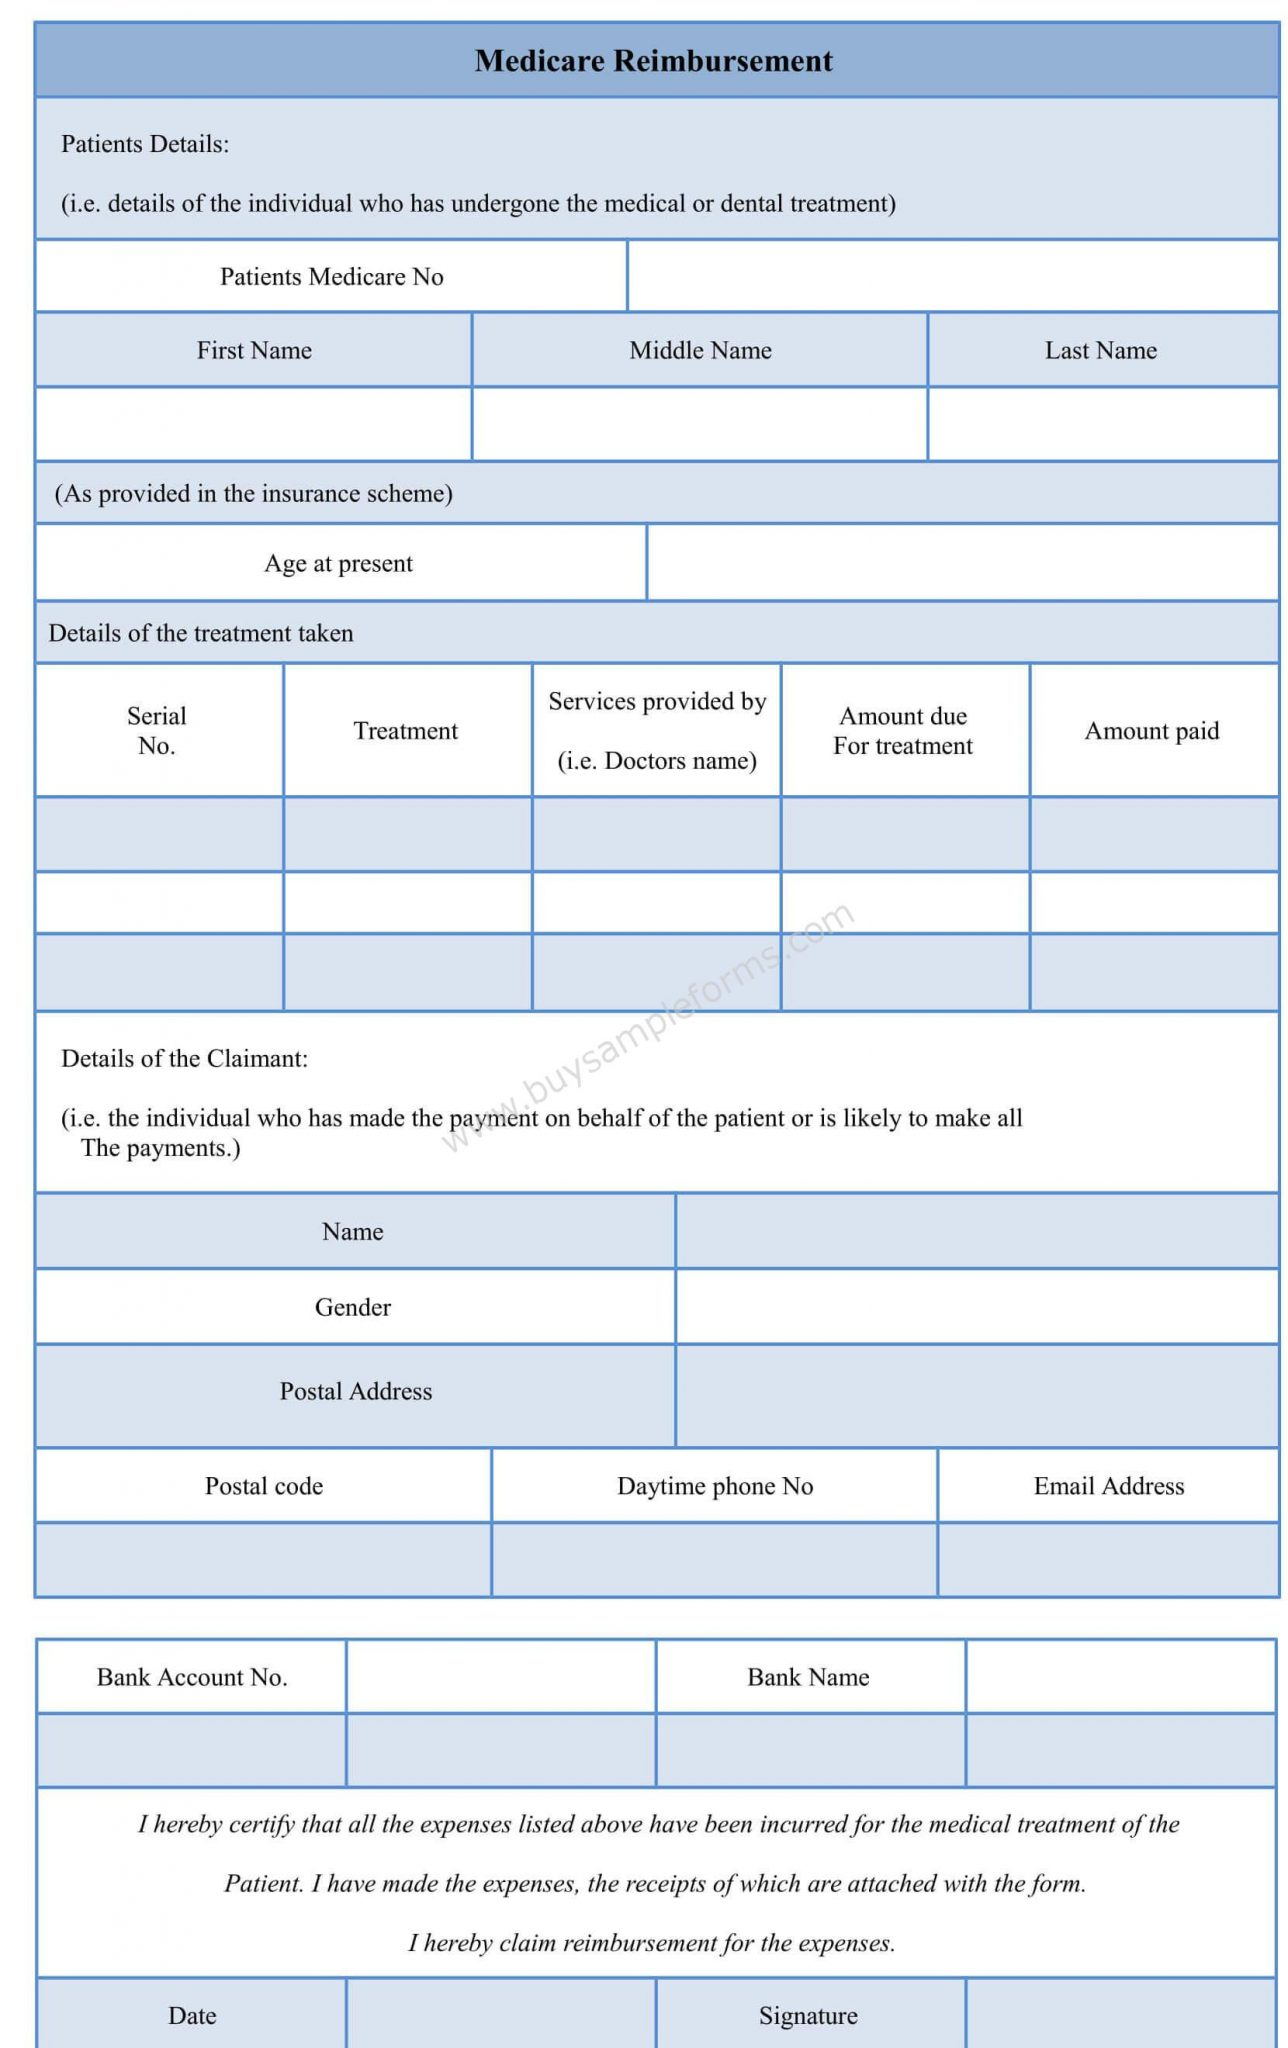 Sample Medicare Reimbursement Form – Reimbursement Form